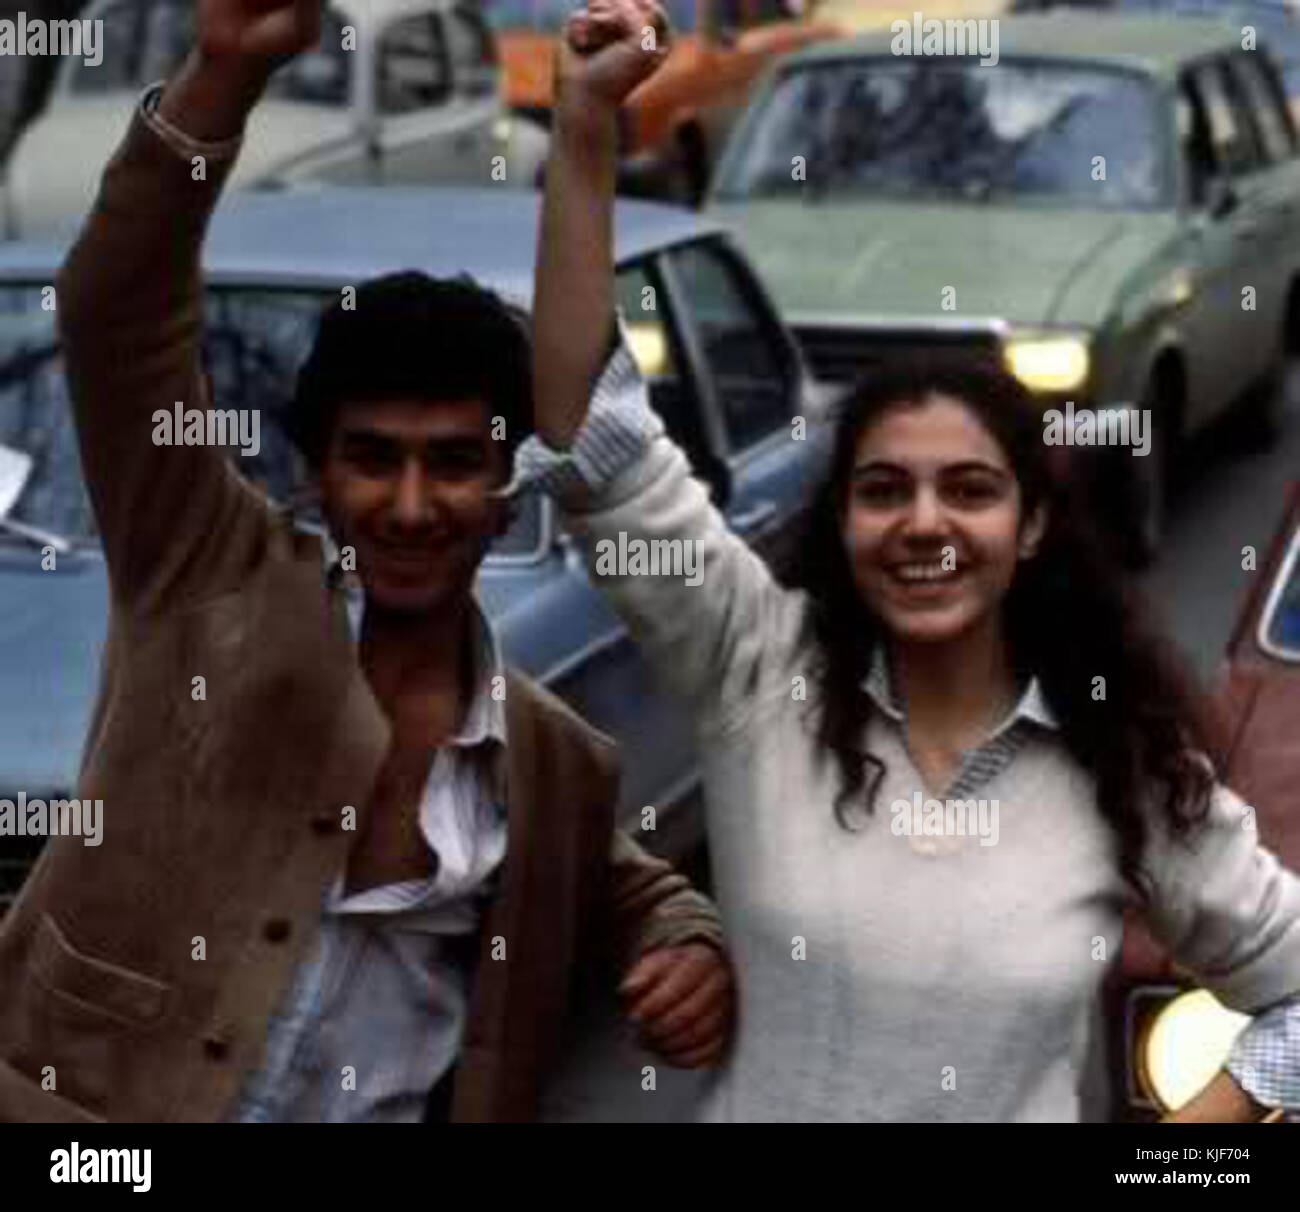 Iranian Revolution youths - Stock Image